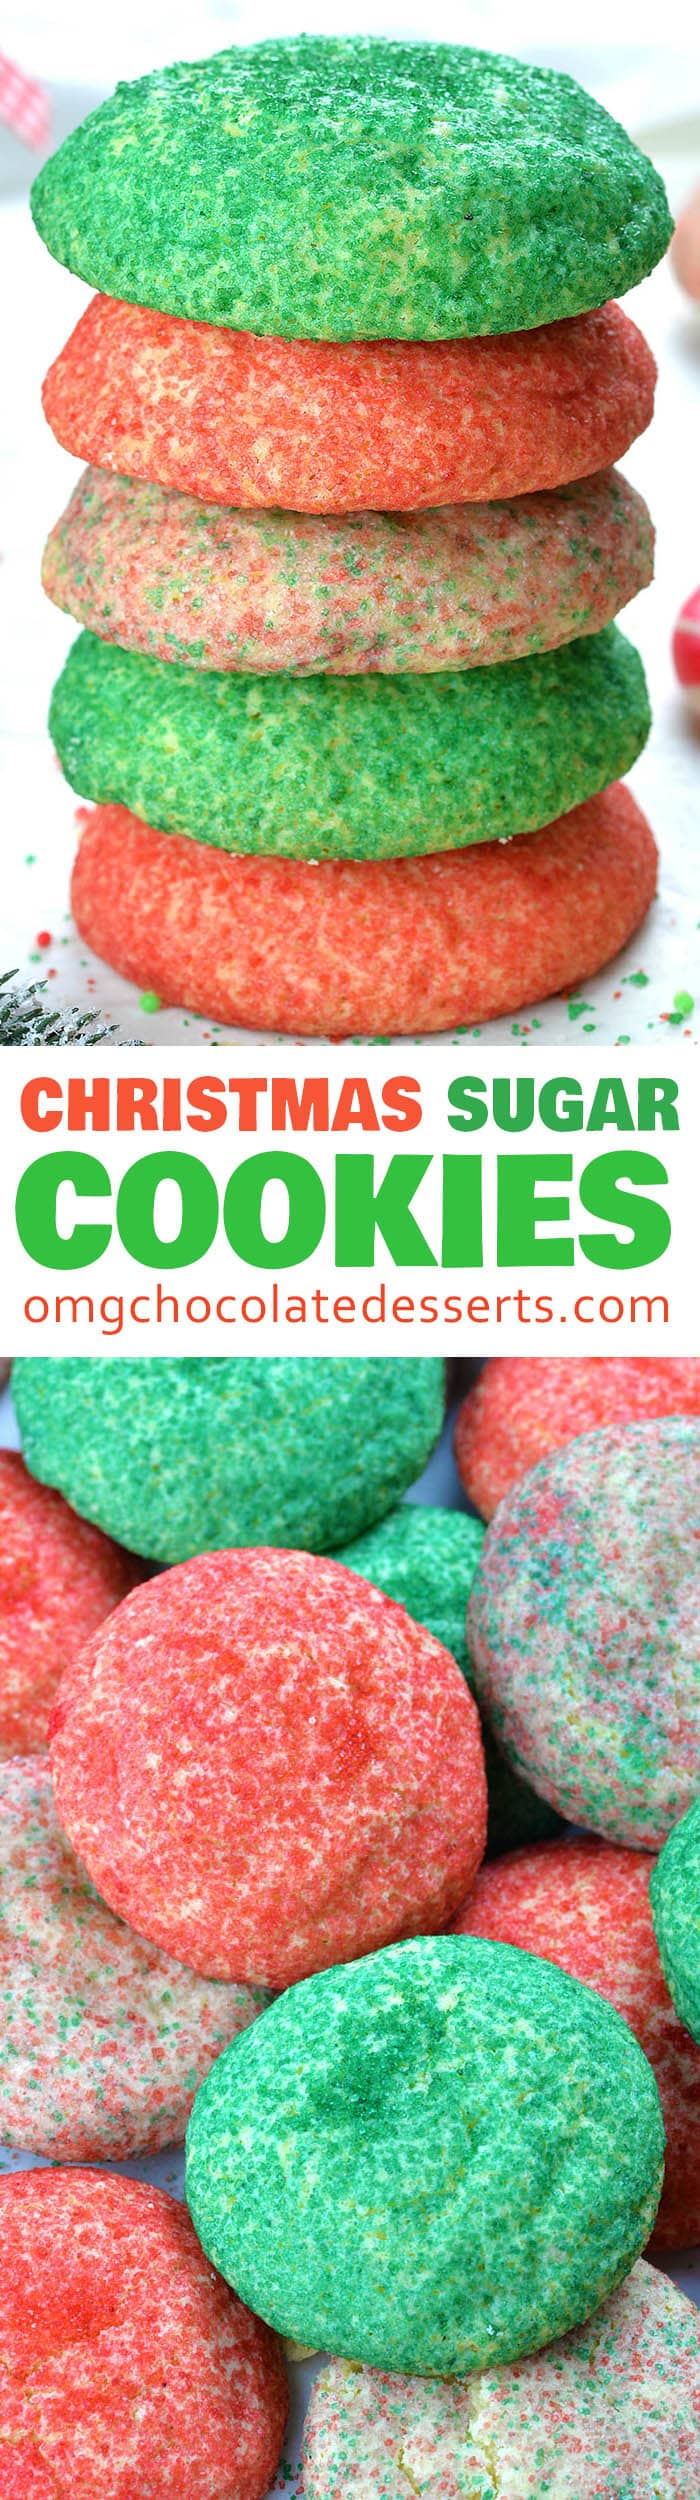 Christmas Sugar Cookies are just fun and festive twist on classic sugar cookie recipe. Sugar cookies are Christmas cookie staple!!!